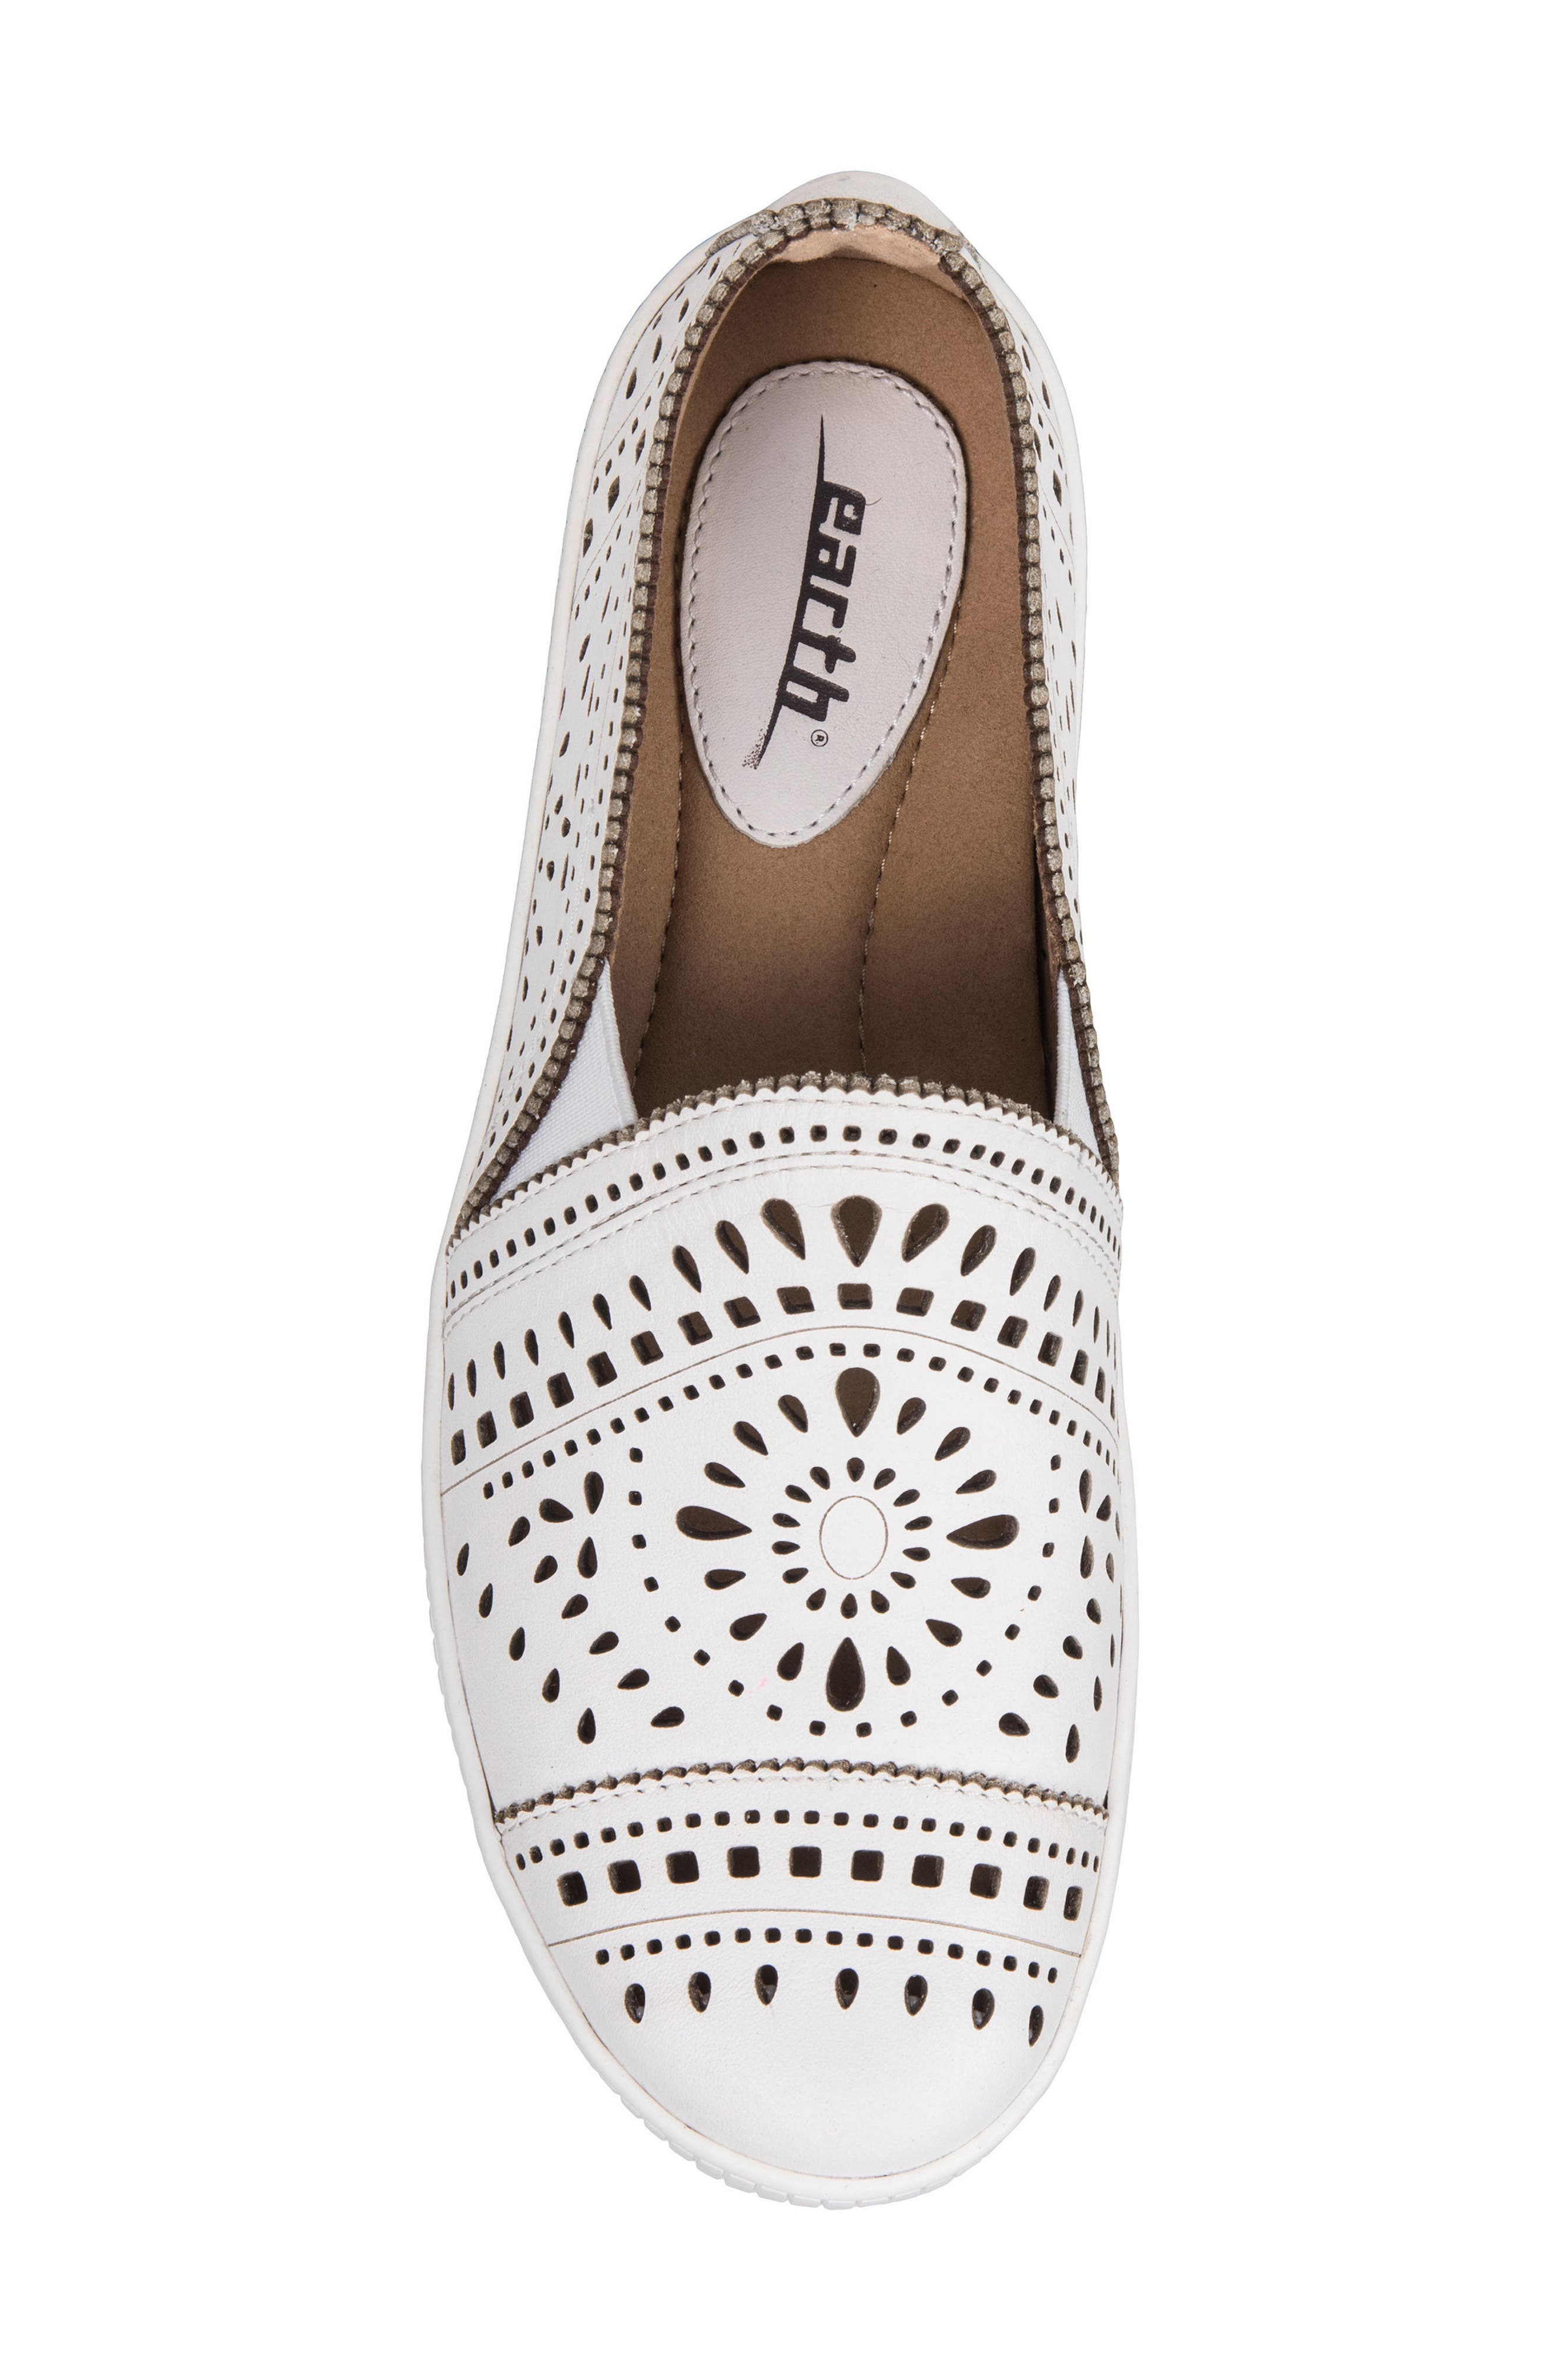 Tayberry Perforated Slip-On Sneaker,                             Alternate thumbnail 18, color,